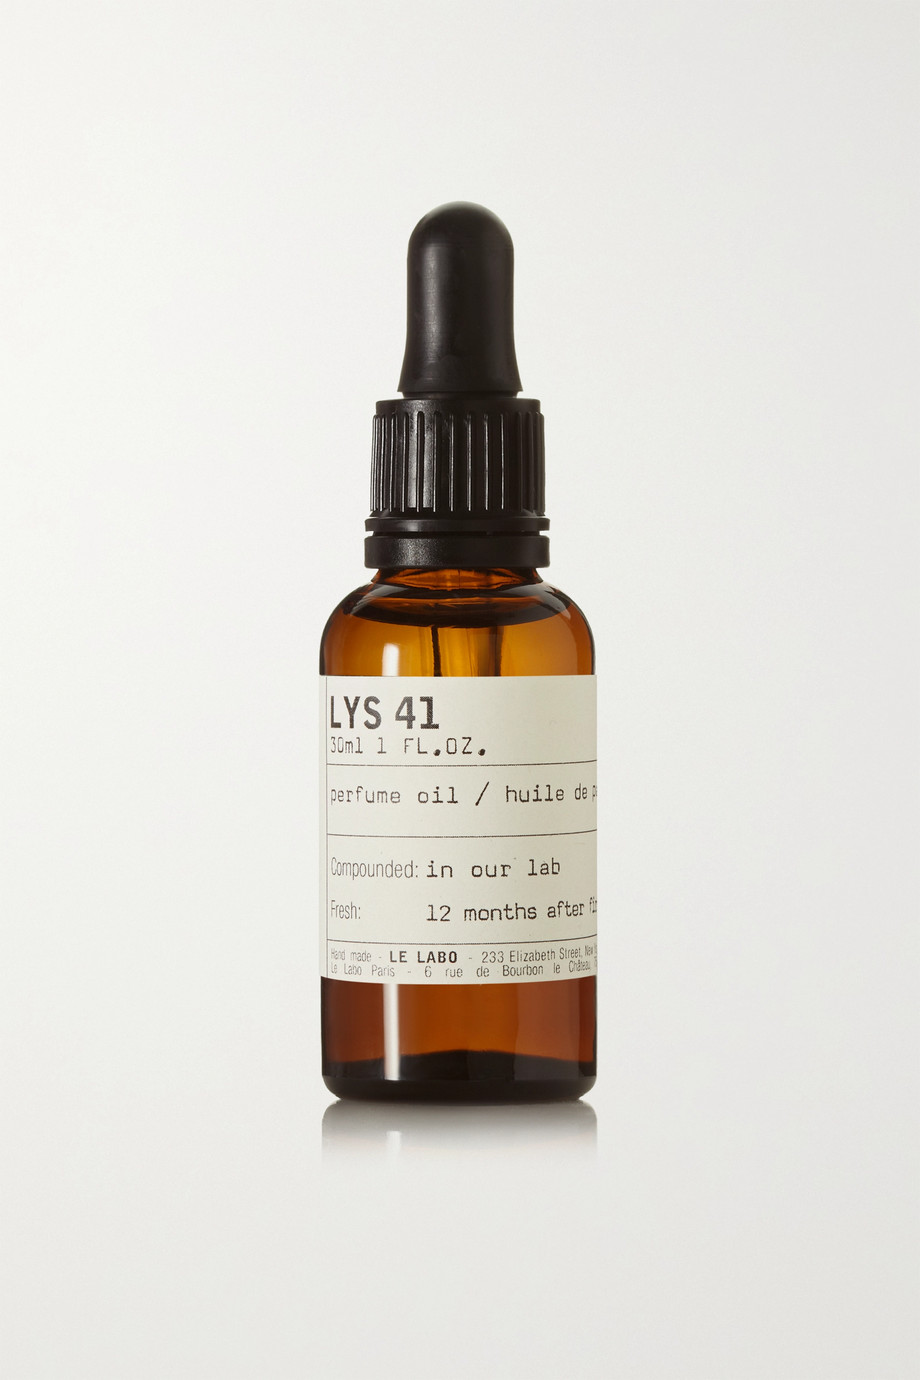 Le Labo Lys 41 Perfume Oil - Lily & White Flowers, 30ml